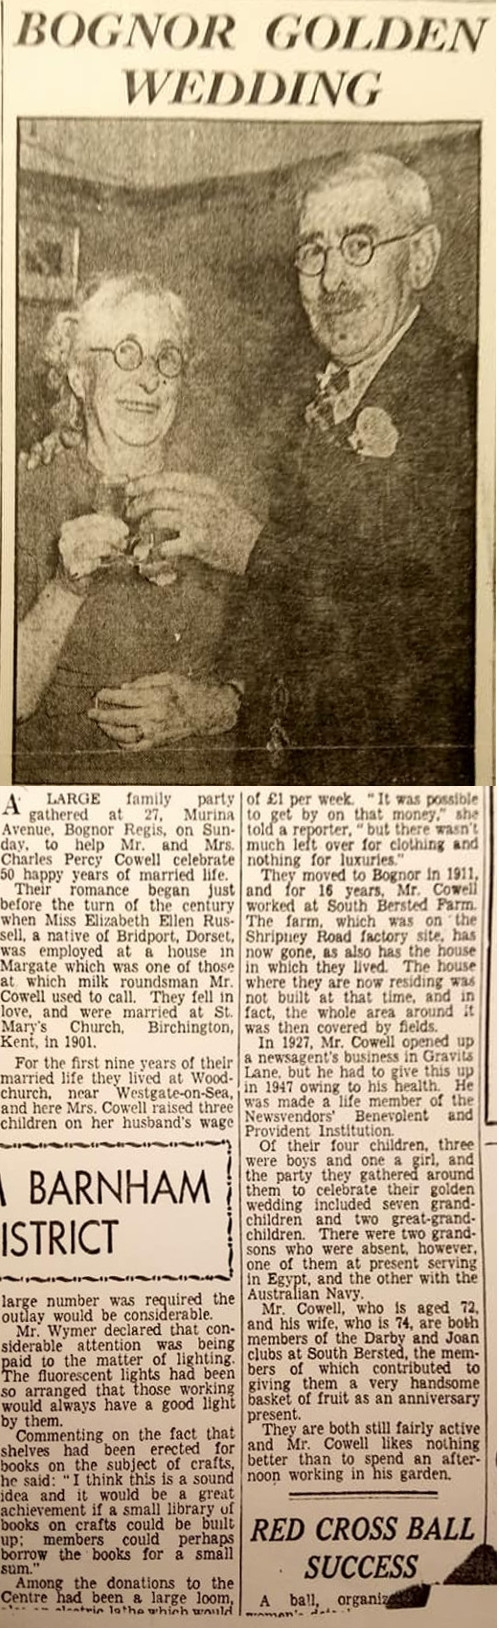 Bognor Post - 3 Nov 1951